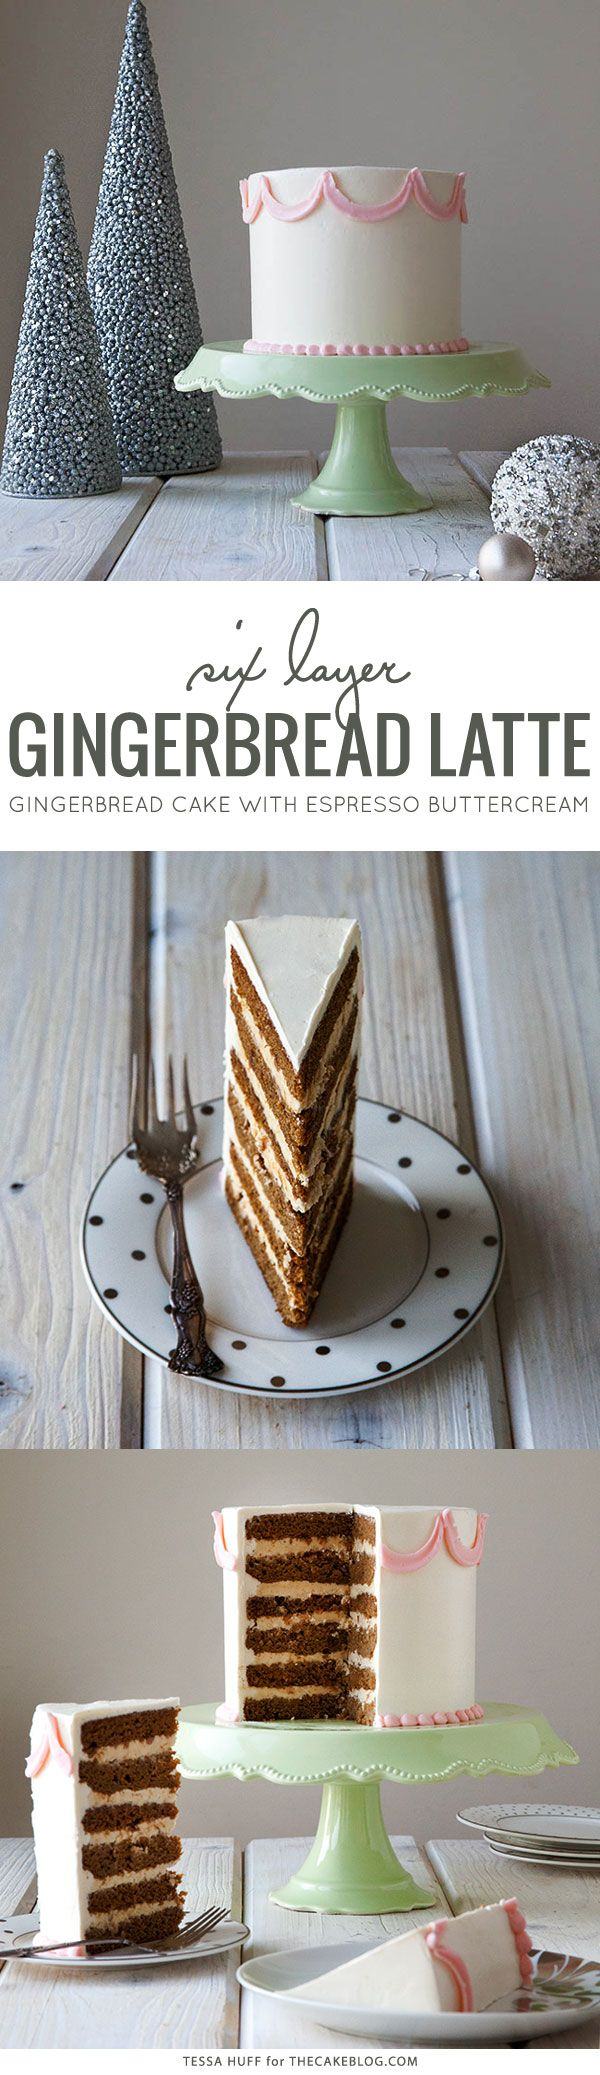 Six layers of gingerbread cake filled with espresso buttercream and toffee bits | Gingerbread Latte Cake  |  by Tessa Huff for TheCakeBlog.com